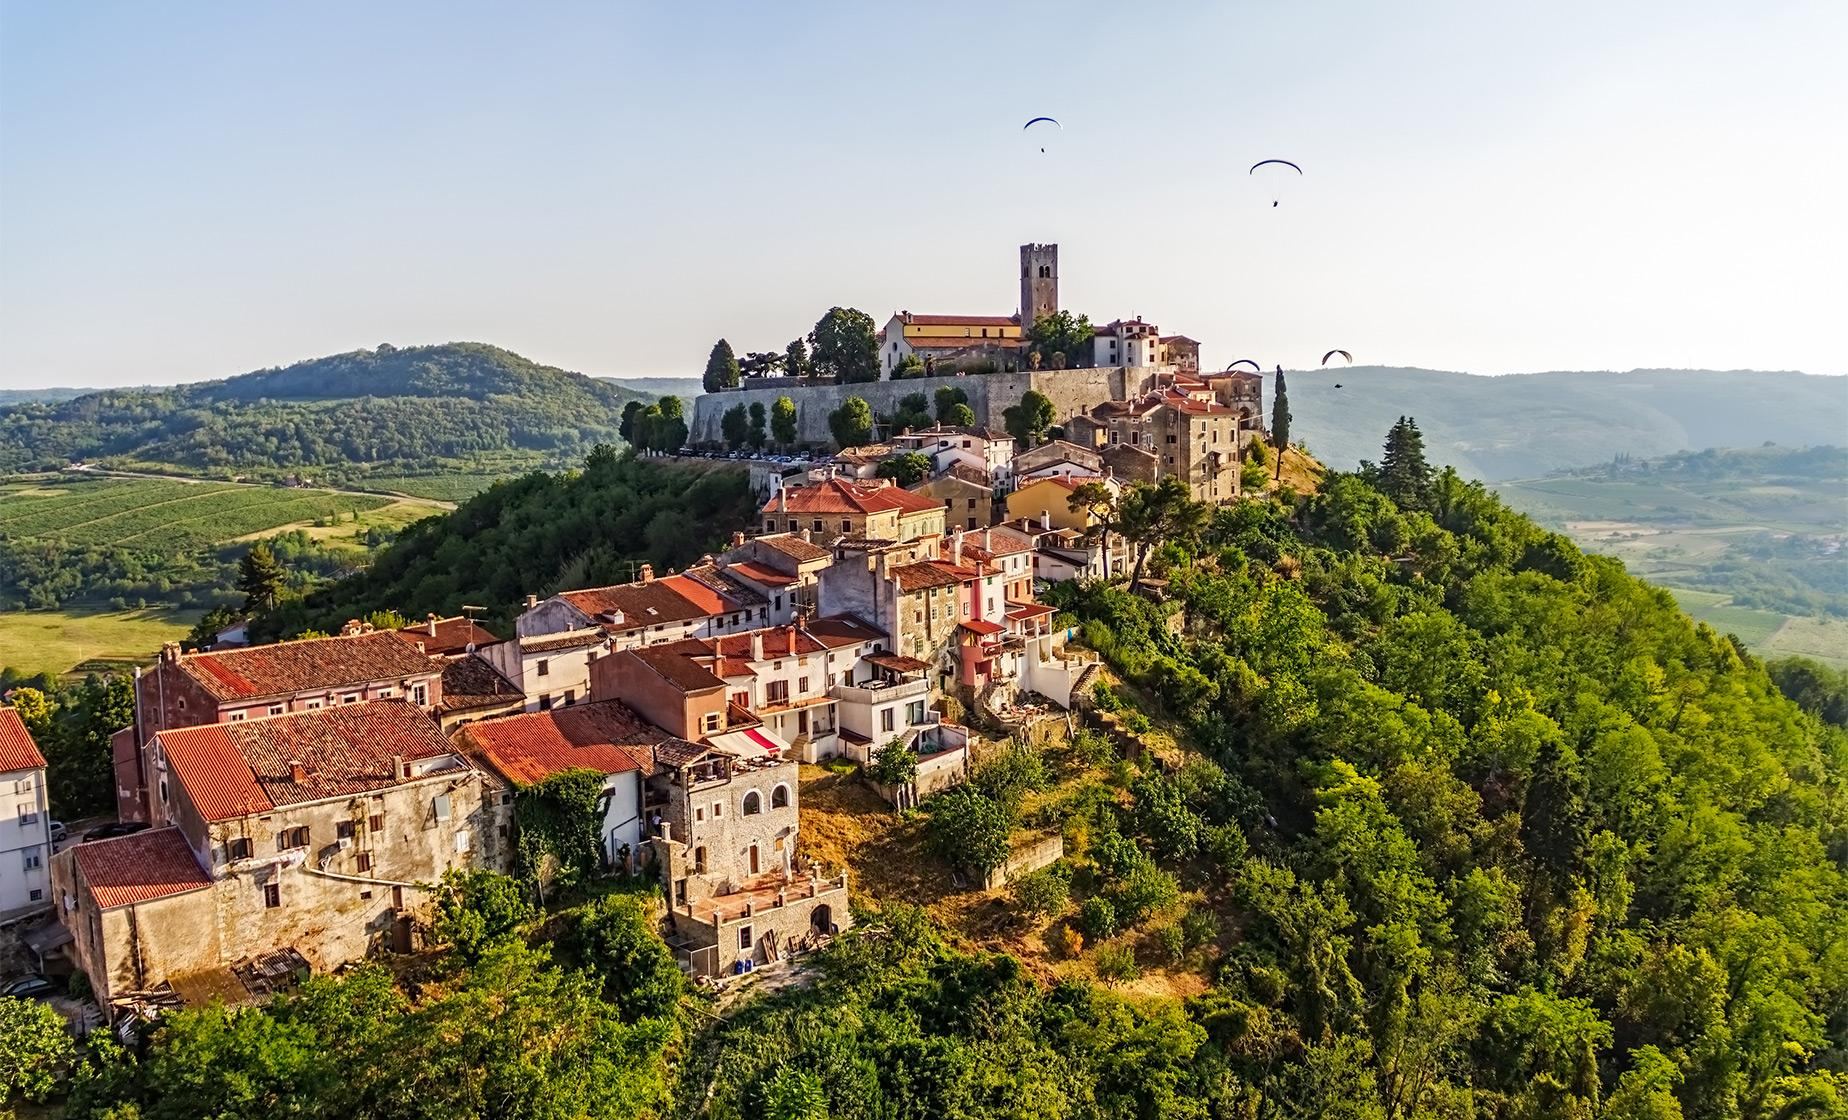 Highlights of Istria-Hum, Motovun and Labin